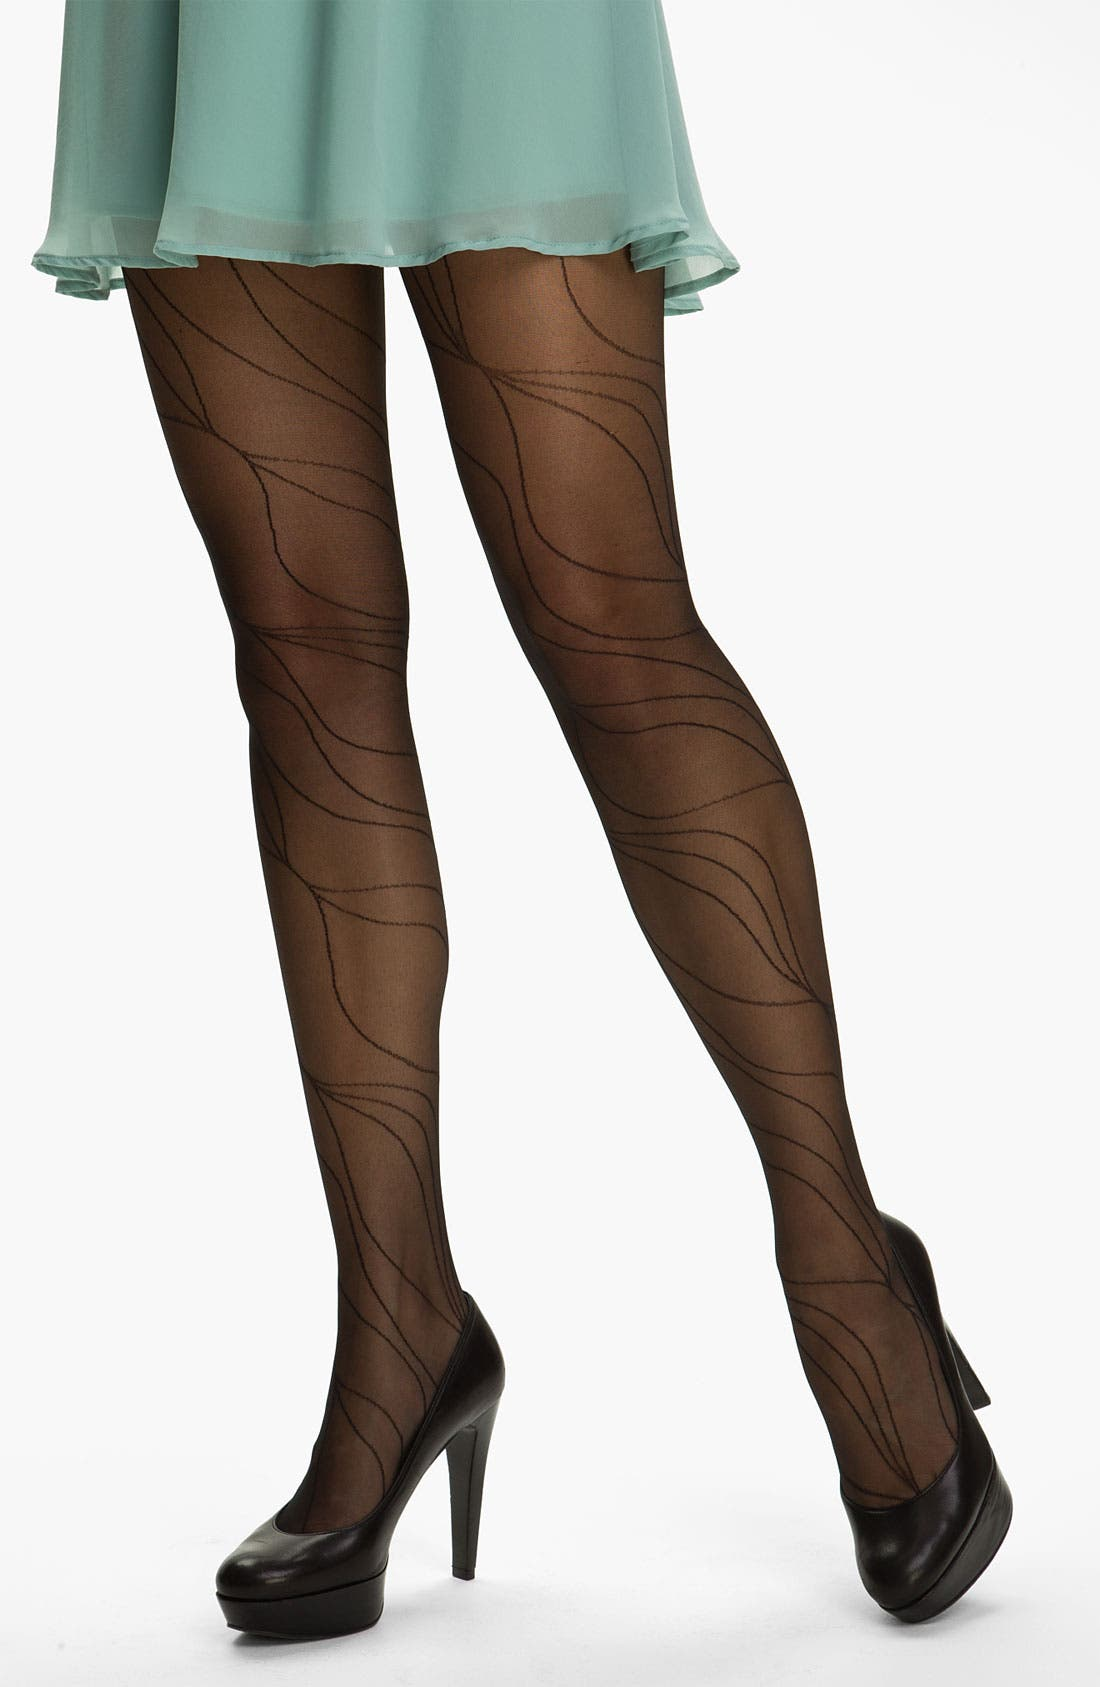 Alternate Image 1 Selected - Calvin Klein 'Linear Spiral' Control Top Pantyhose